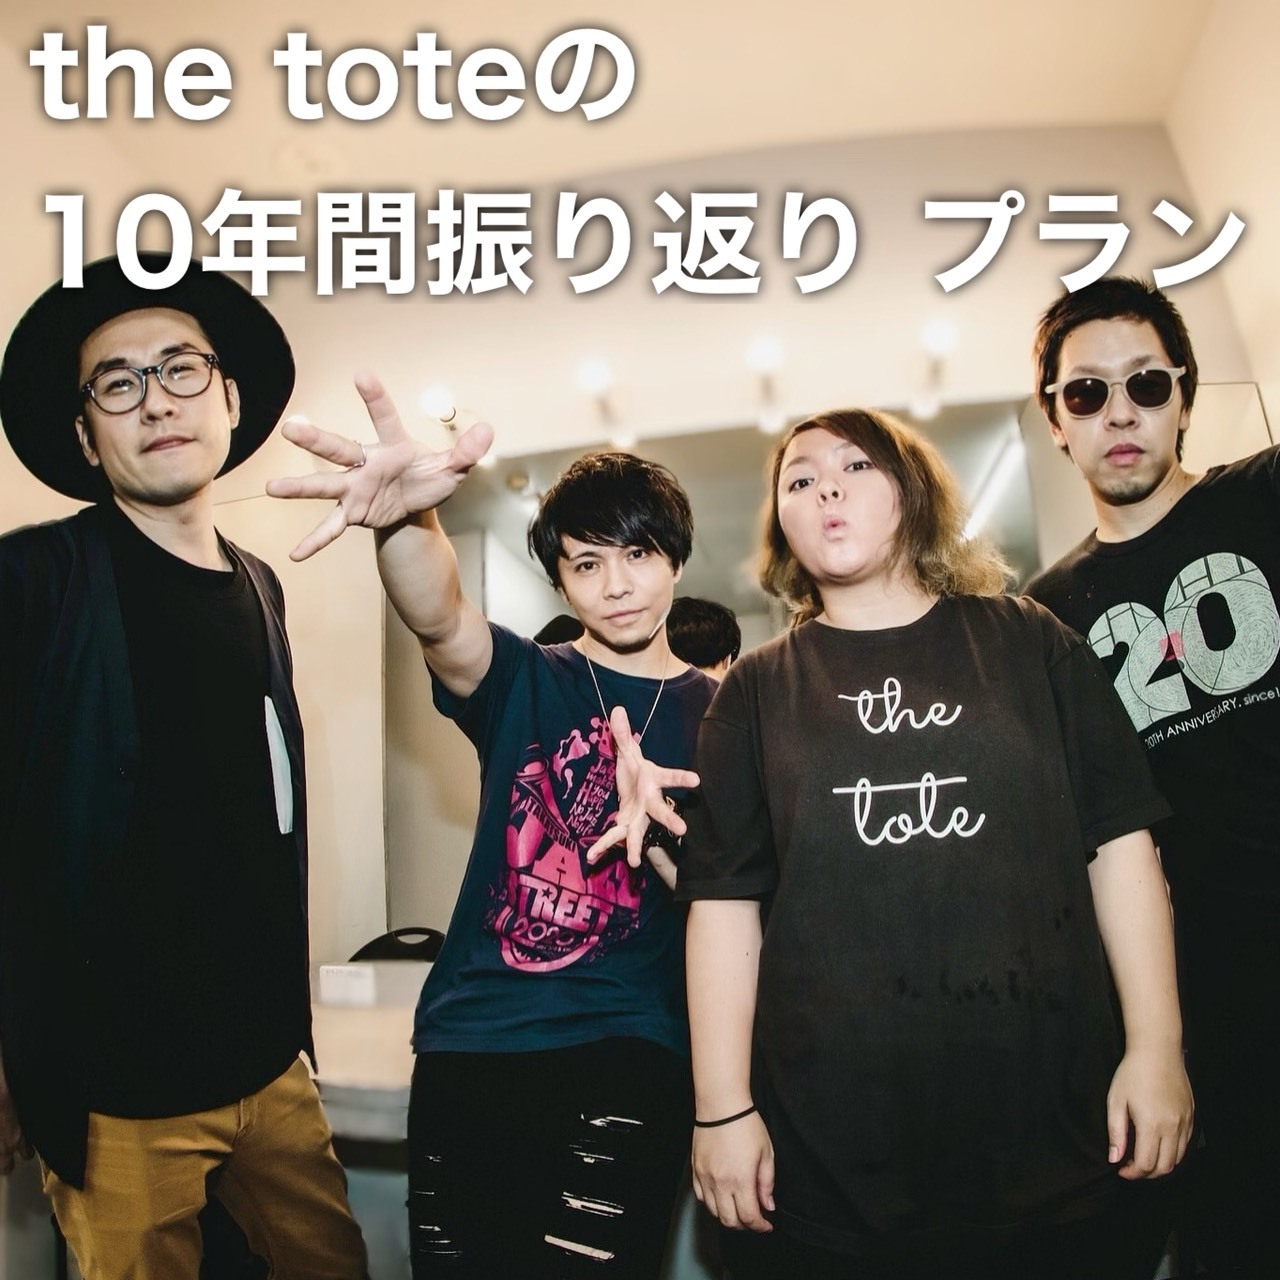 <the toteの10年間振り返り プラン>